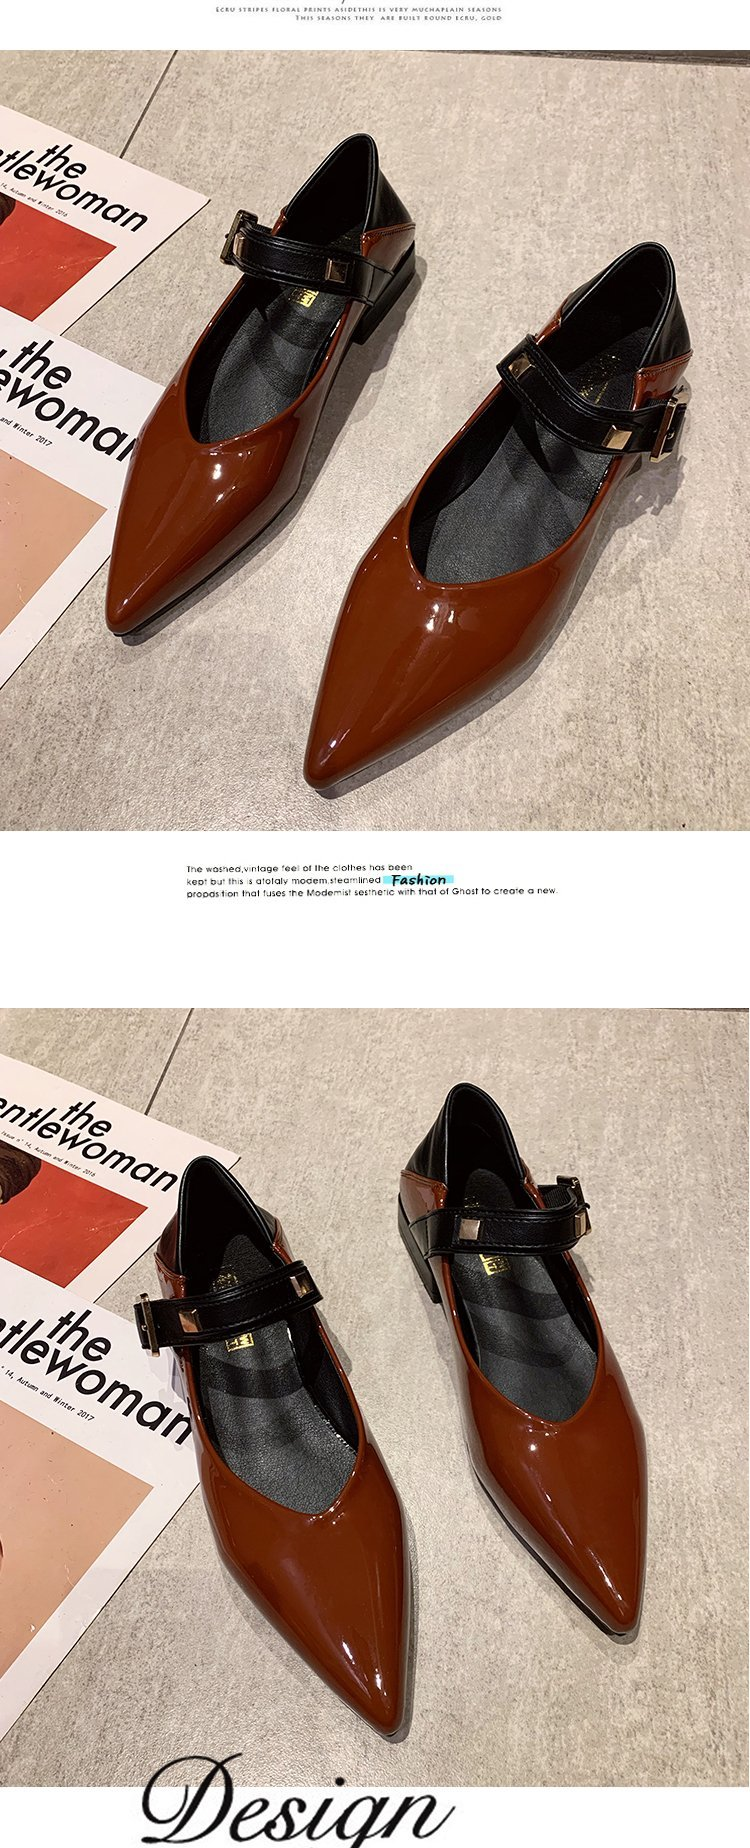 Autumn single-shoe women's 2020 new low-heeled flat-soled shoes women's one-word buckle with shallow-mouthed pointed women's shoes lacquered leather shoes 55 Online shopping Bangladesh